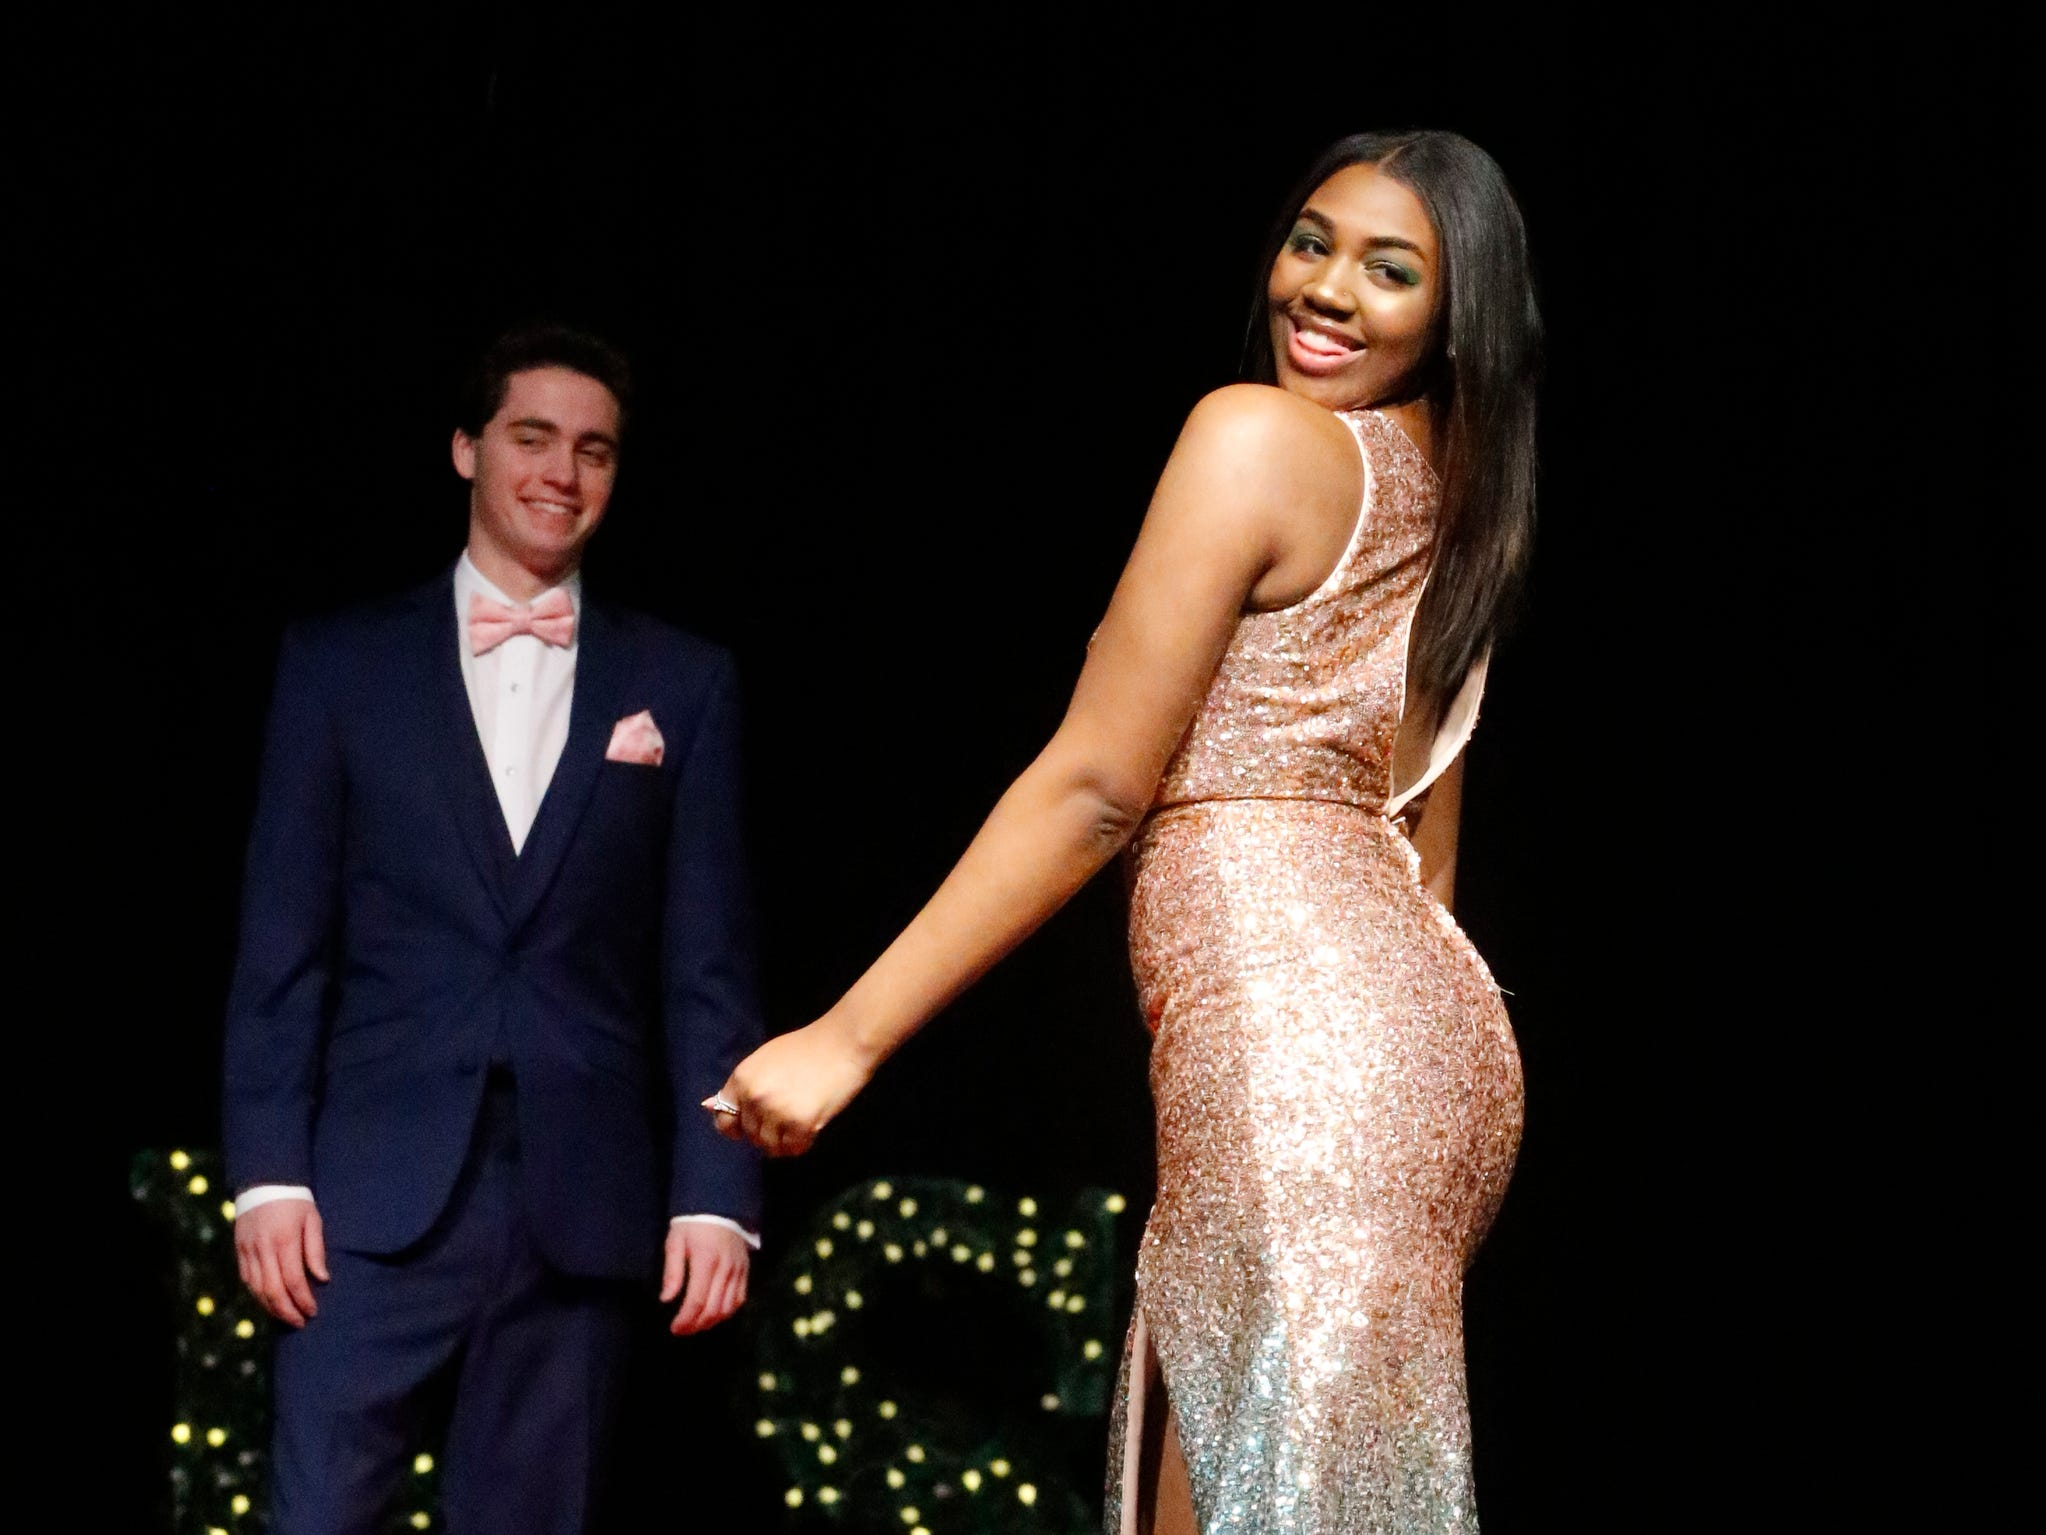 Iylana Fisher steps forward to show off her dress as Cooper Moss waits to show off his tux during the Siegel Prom Fashion show on Thursday, Feb. 14, 2019.